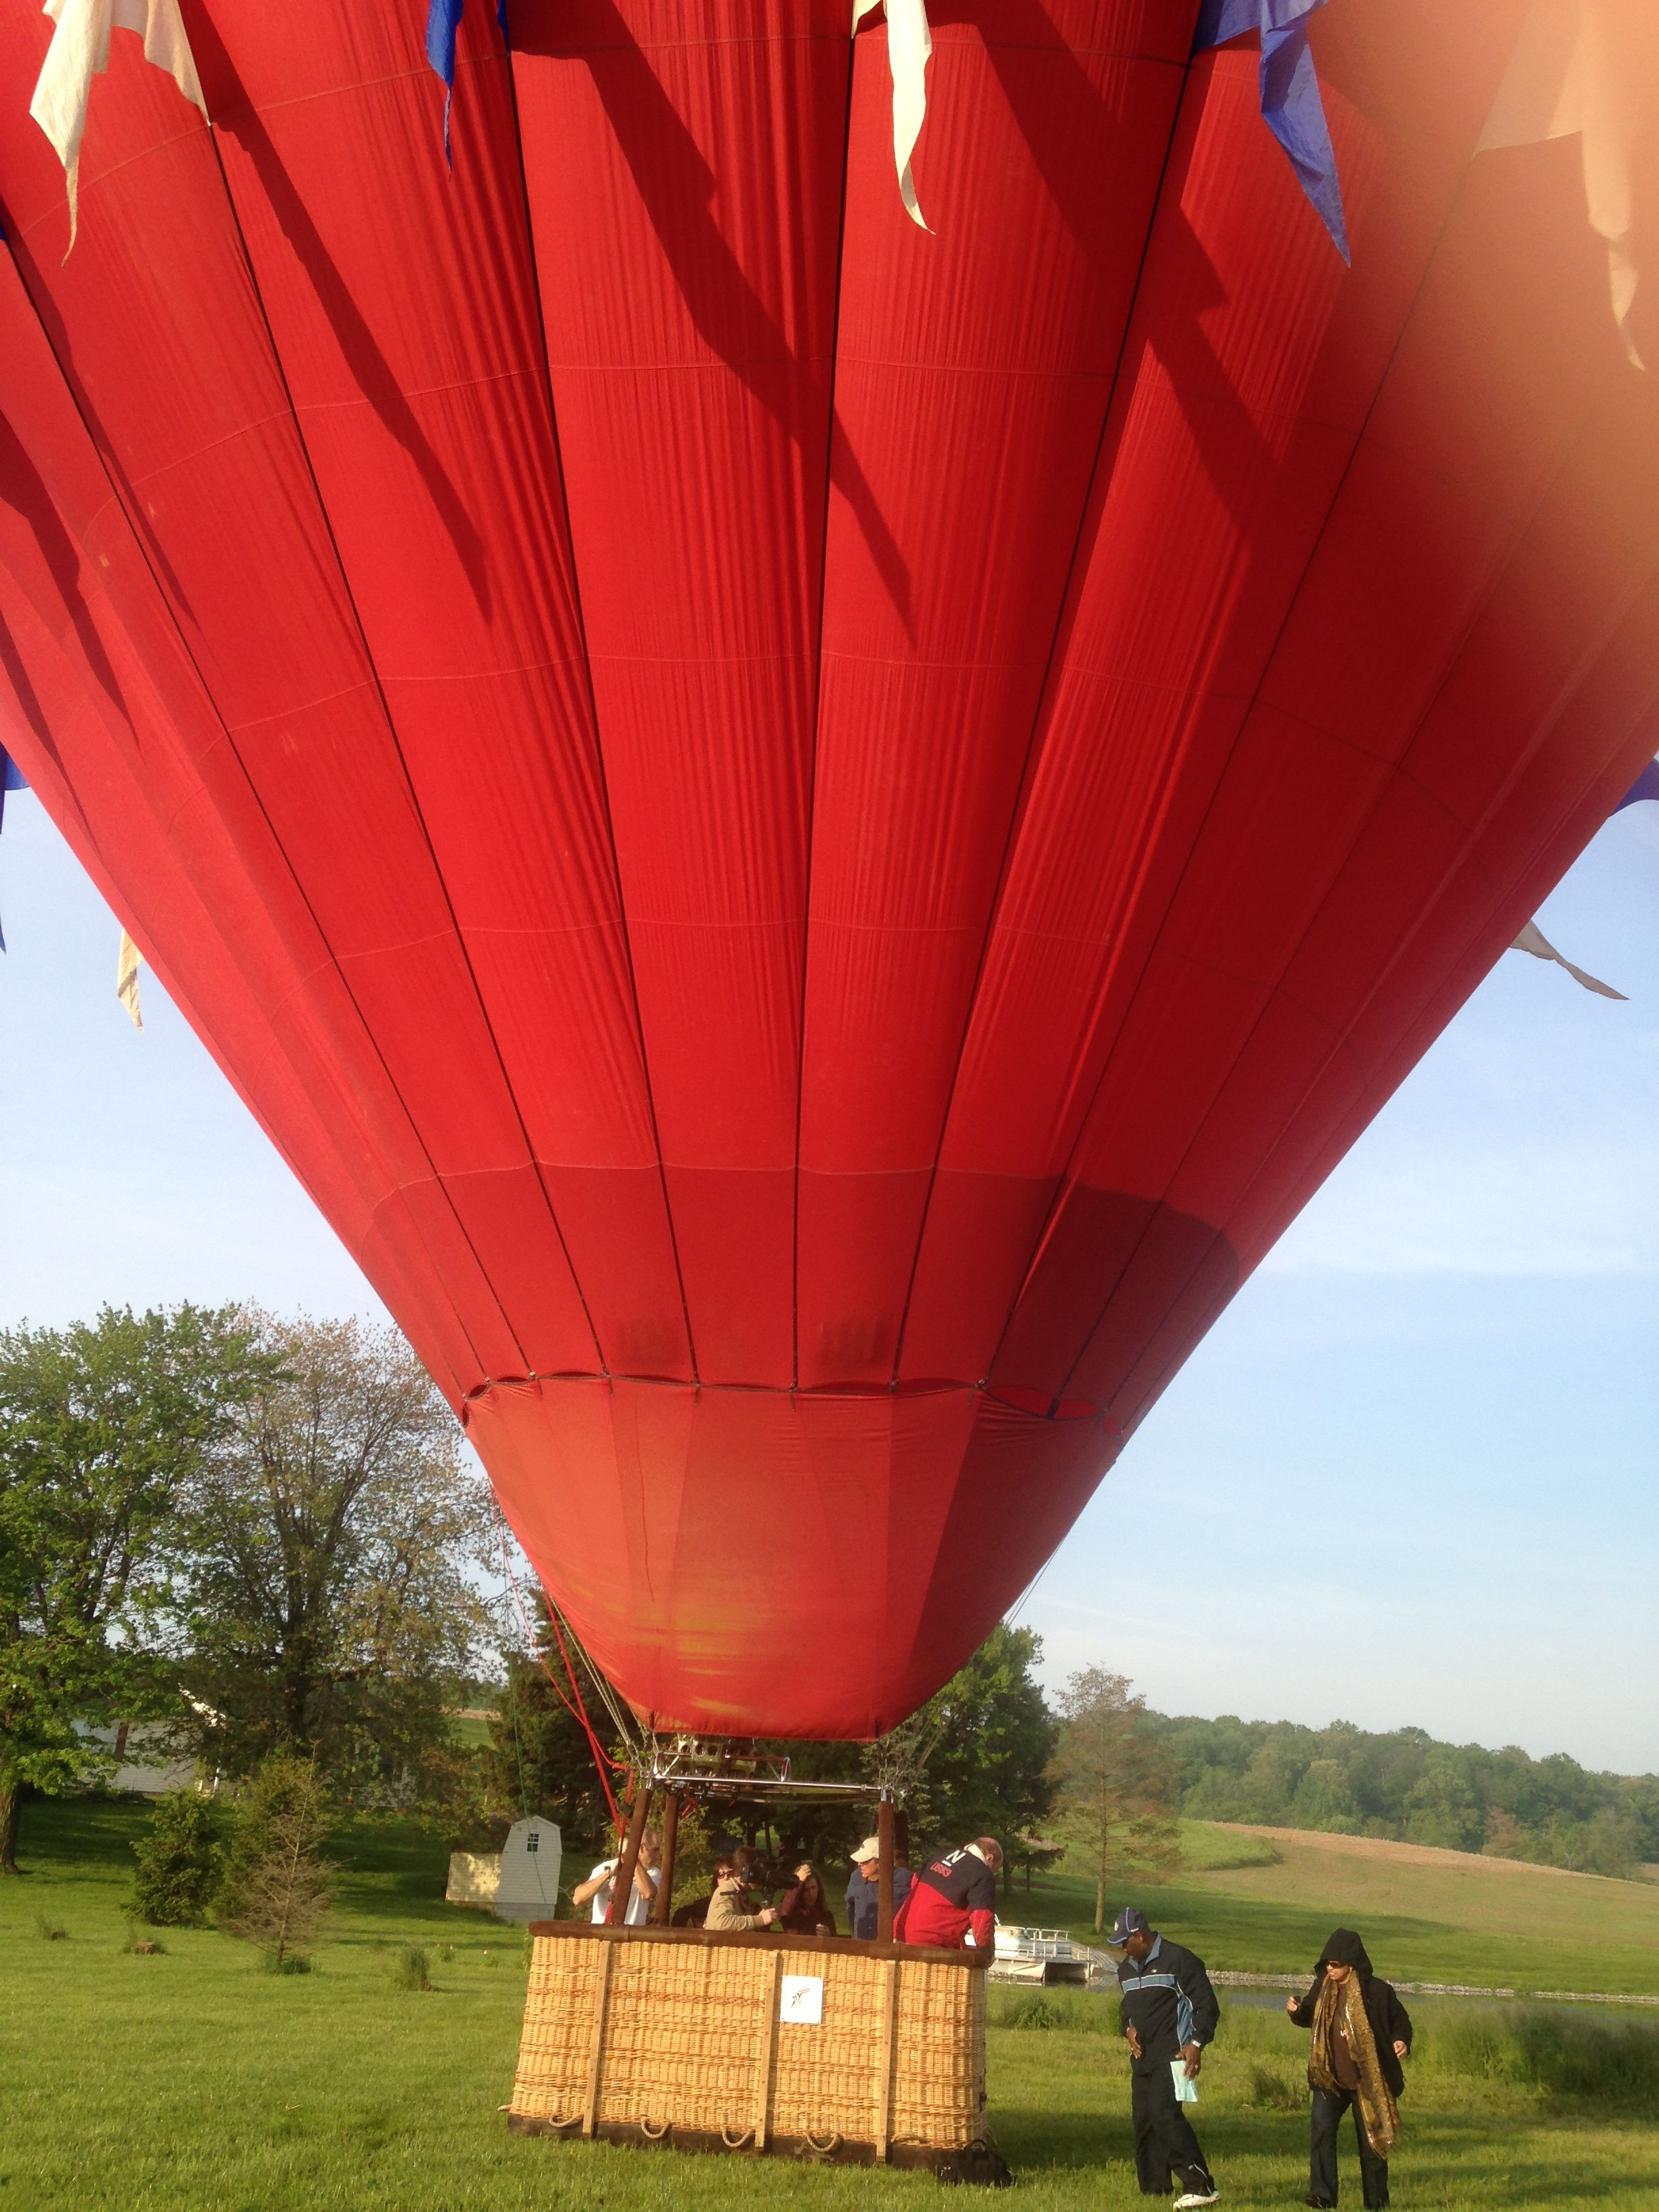 What a way to start the morning! Balloon Rides Daily by